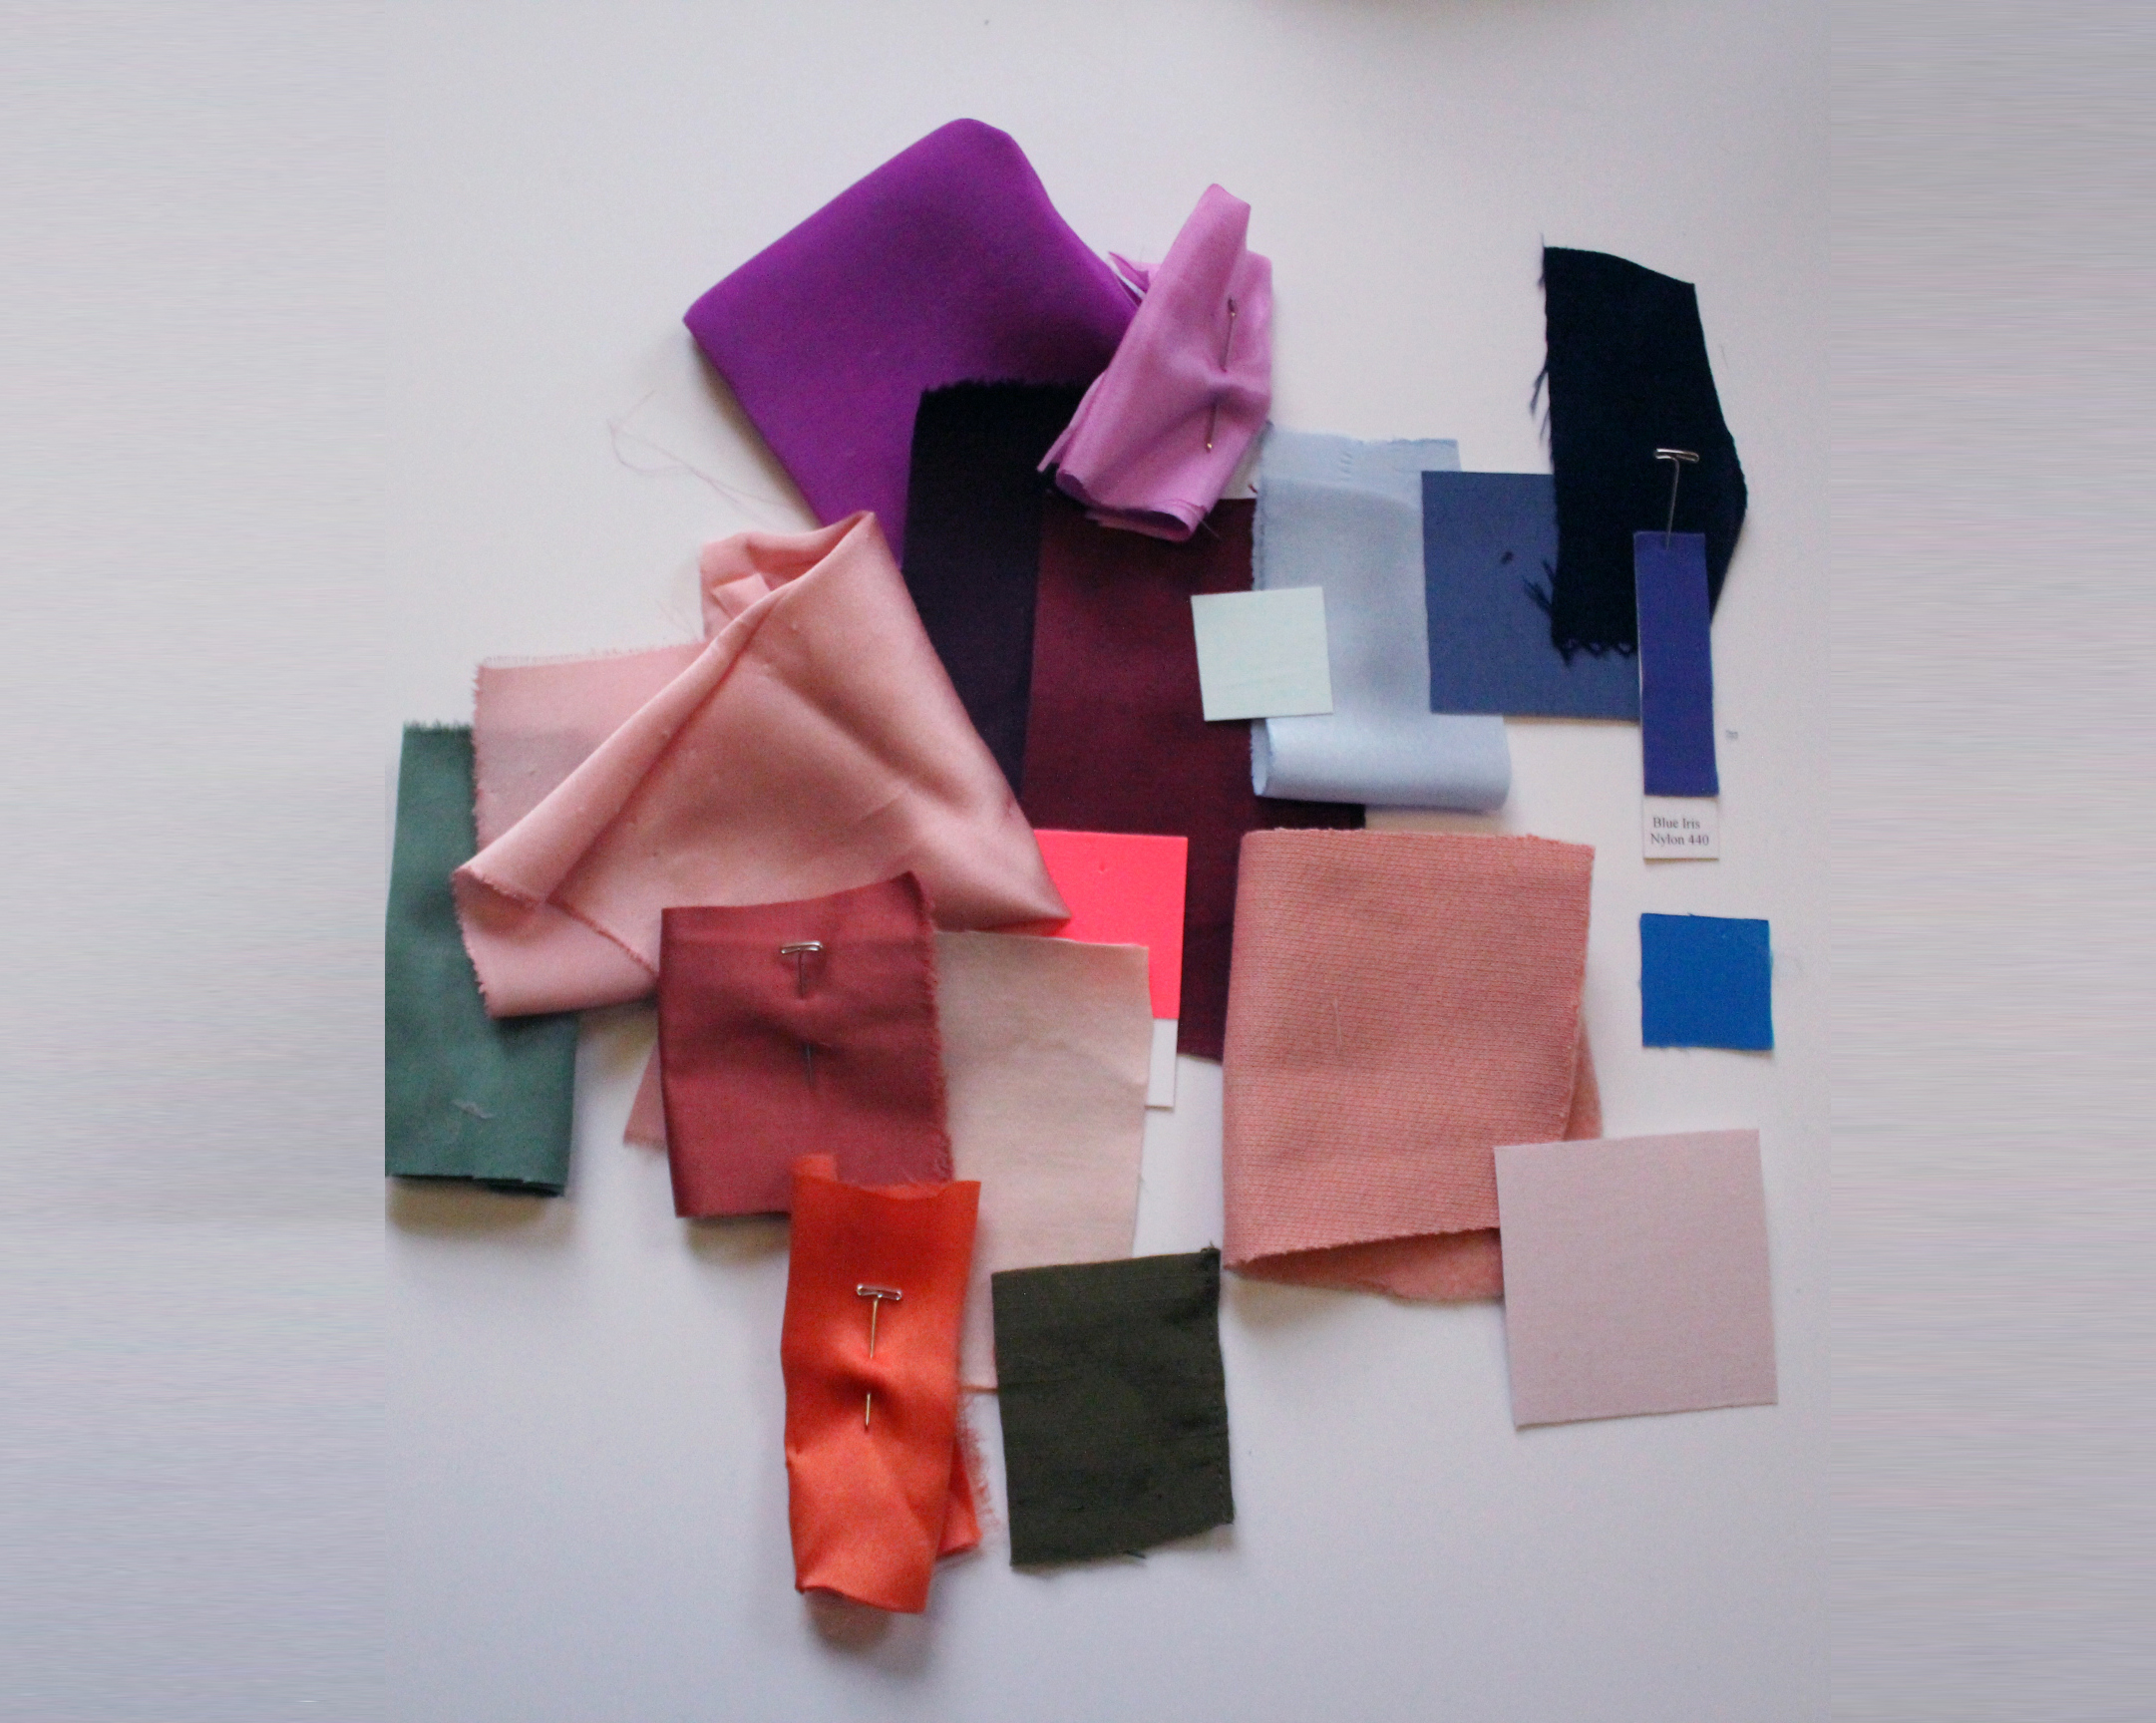 It's part of Jenn's job to play around with color - here are some swatches she arranged.